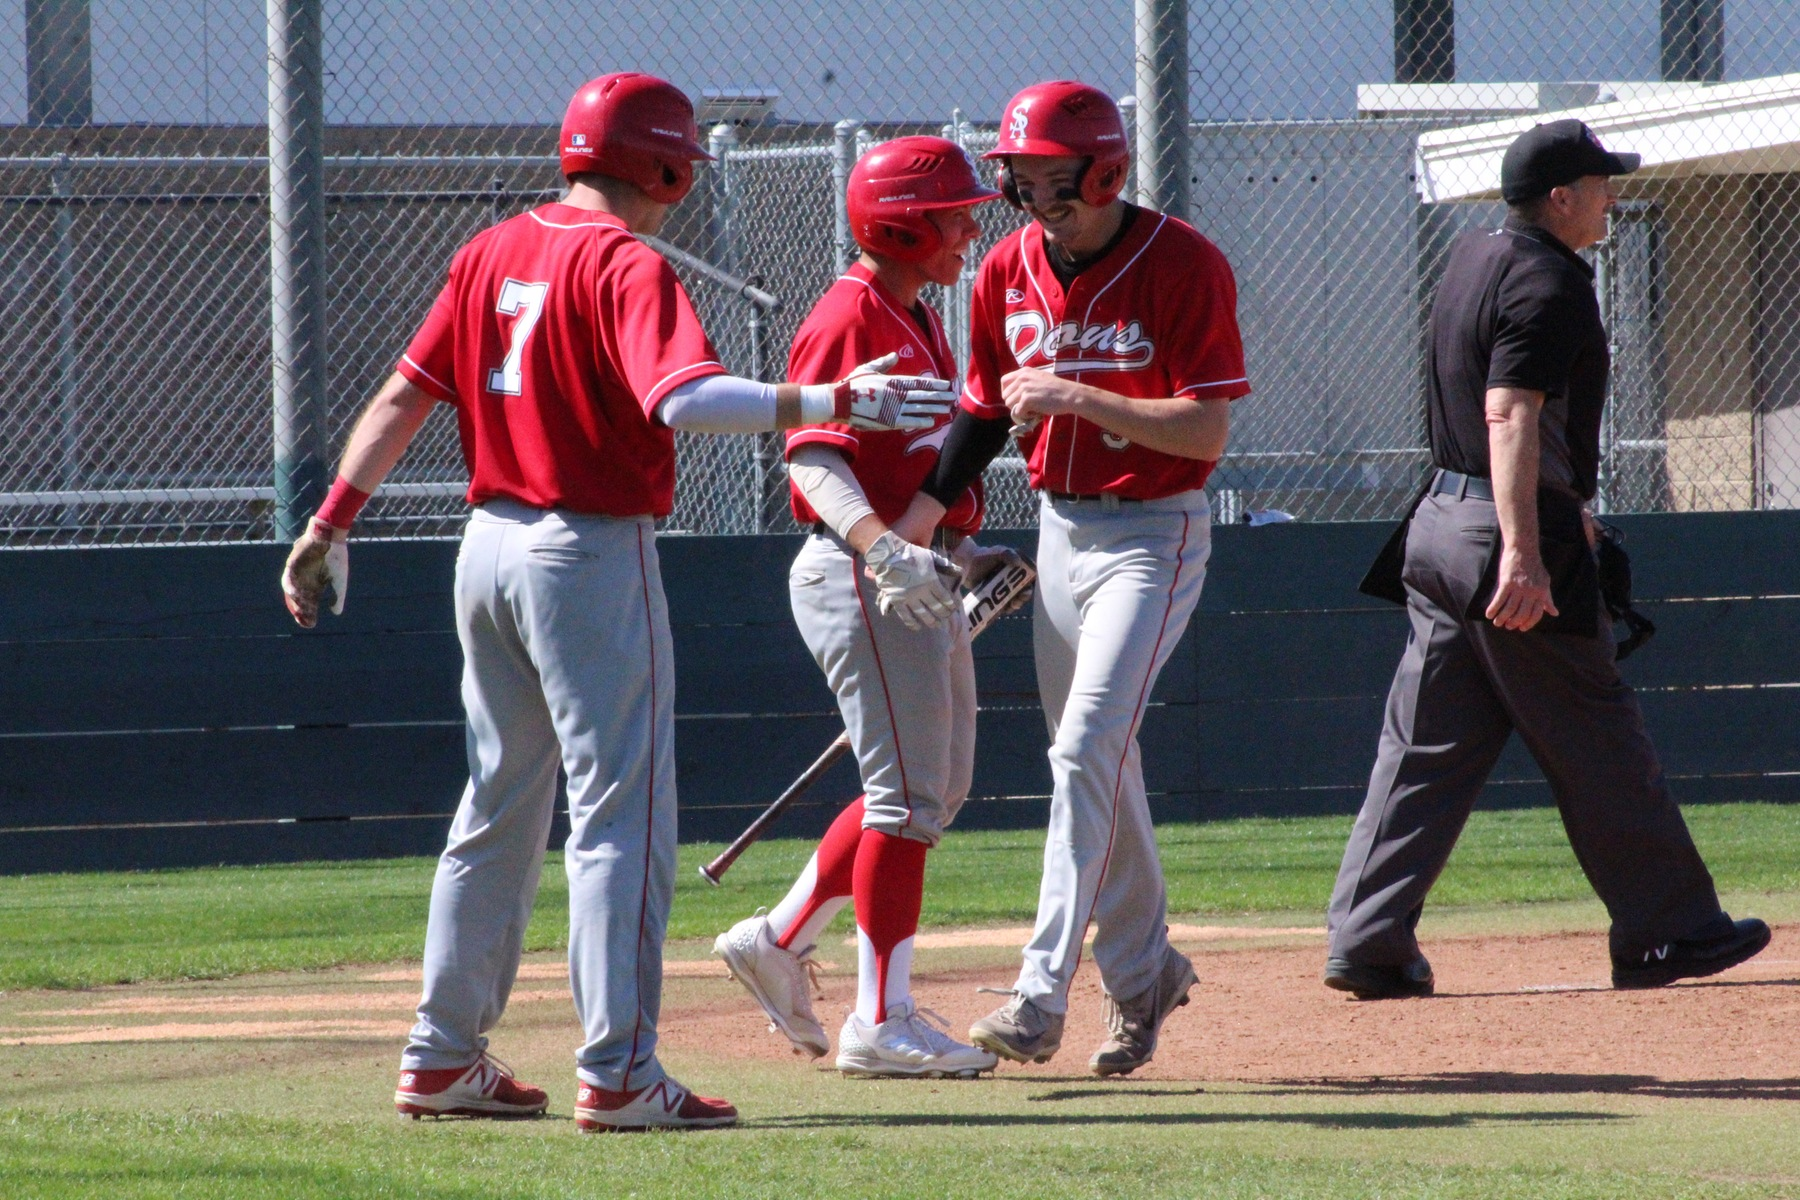 Dons Roll to 12-3 Win Over Golden West